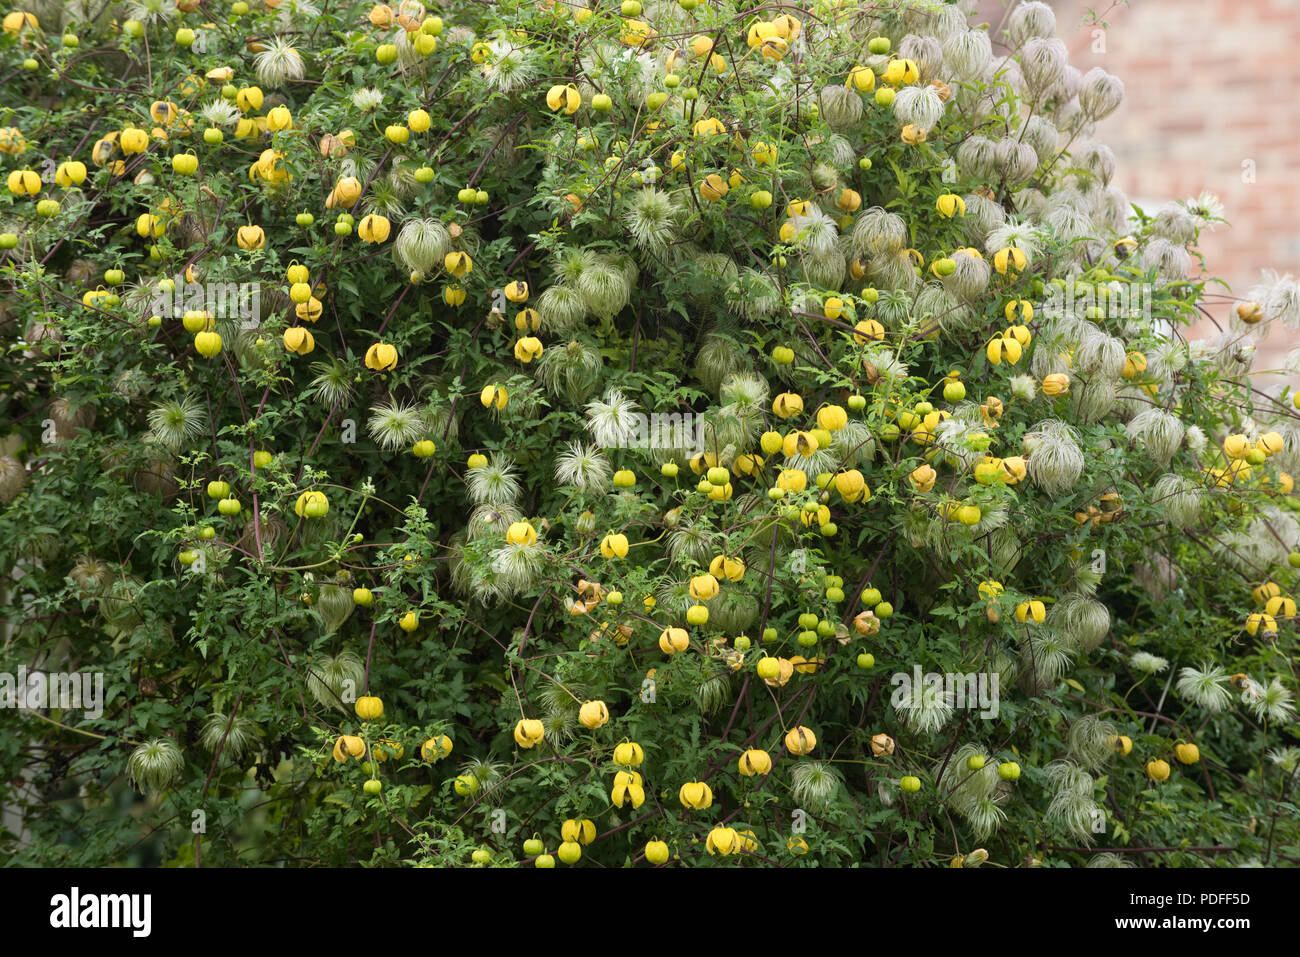 Golden clematis, Clematis tangutica, flowering and seeding over a garden gate and a conifer hedge, Berkshire, September - Stock Image